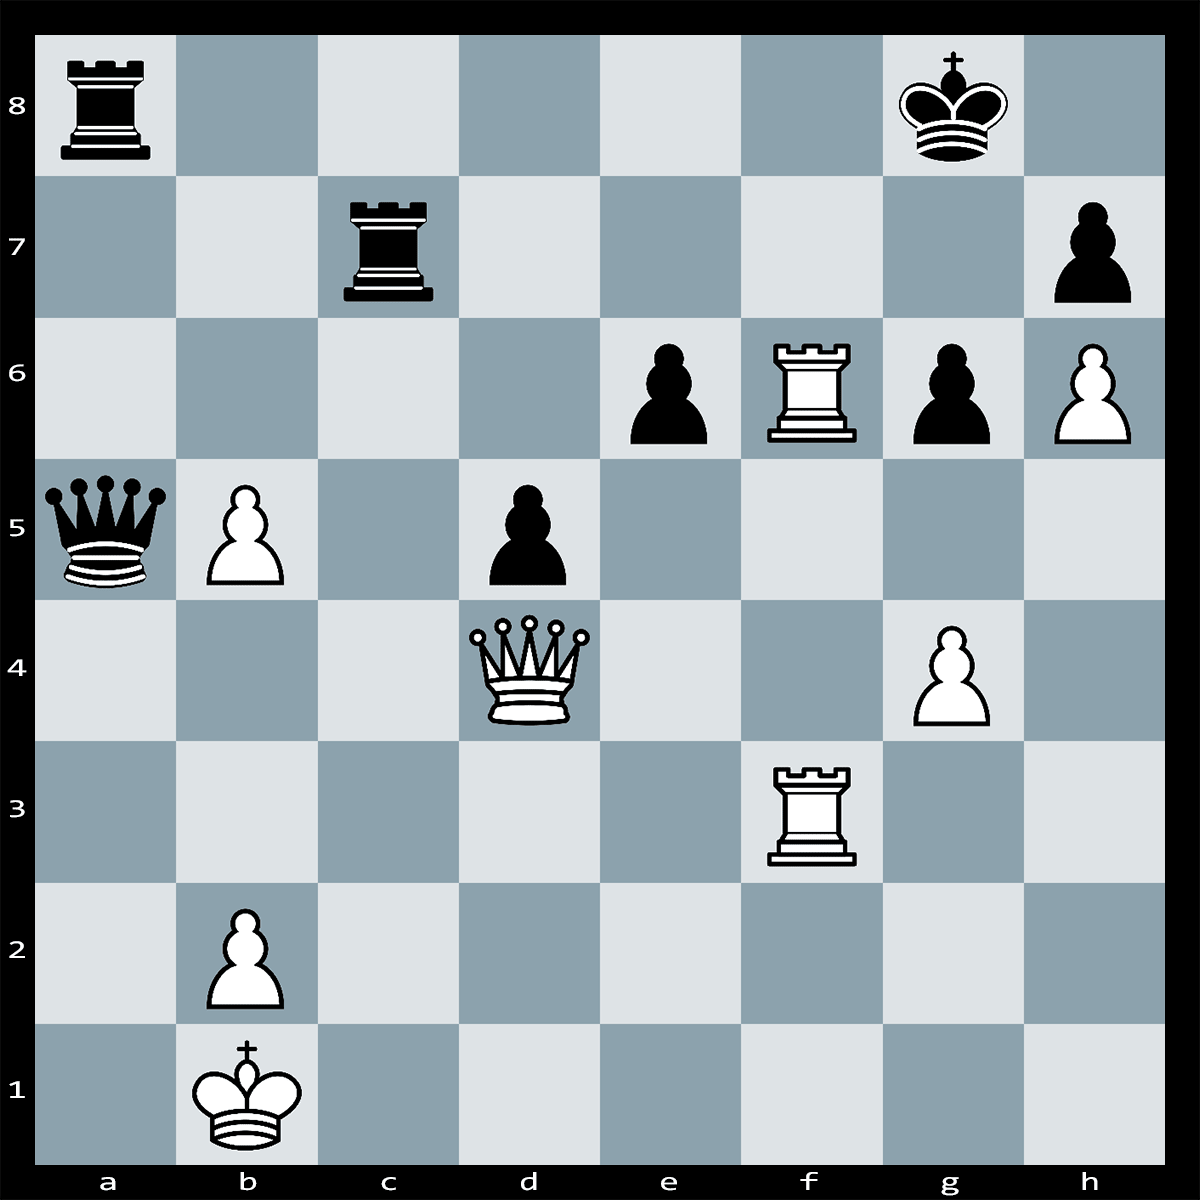 Chess Puzzle #309 | White has a forced mate in three moves. How should White proceed with the attack?